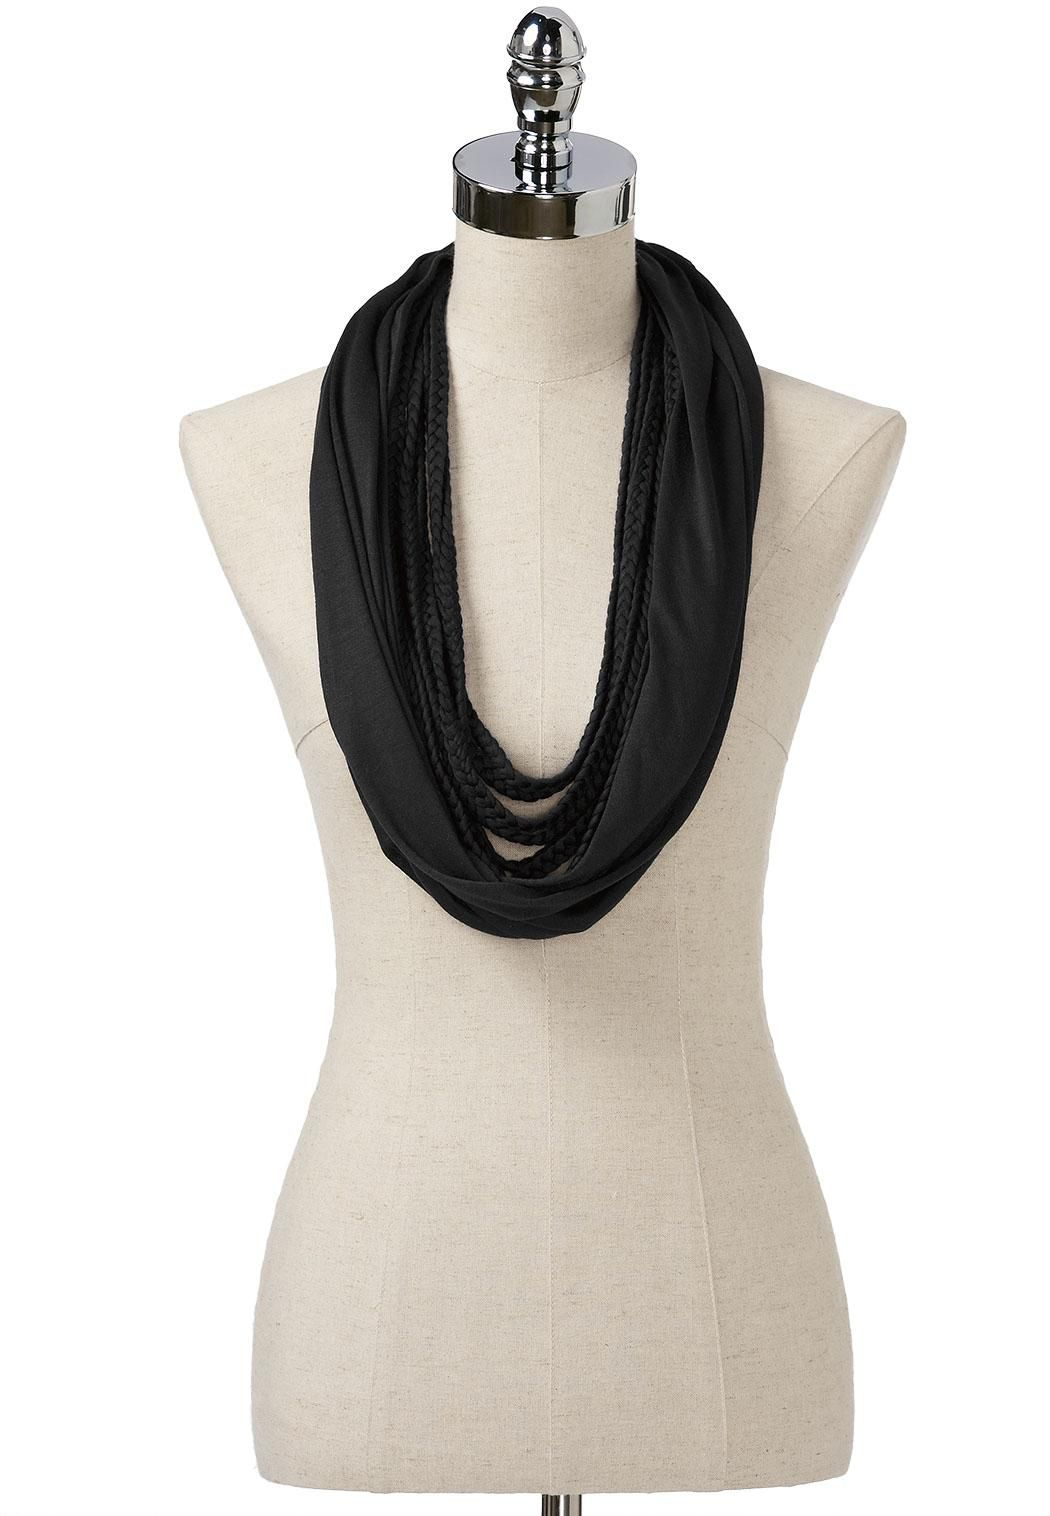 Braided Overlay Infinity Scarf Infinity Cato Fashions